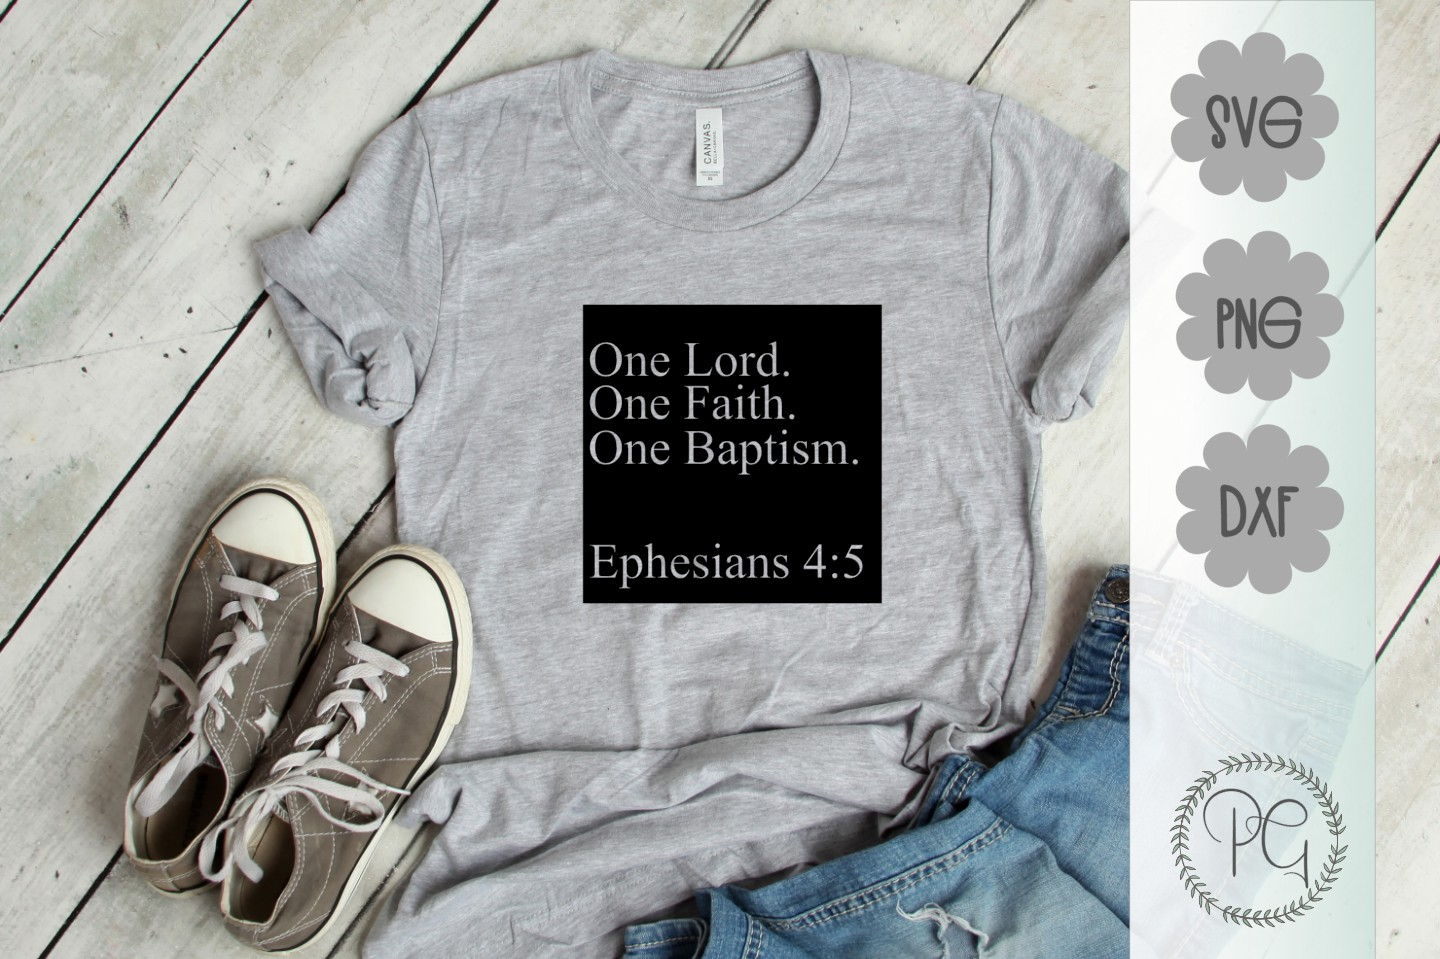 One Lord One Faith One Baptism SVG DXF PNG example image 1